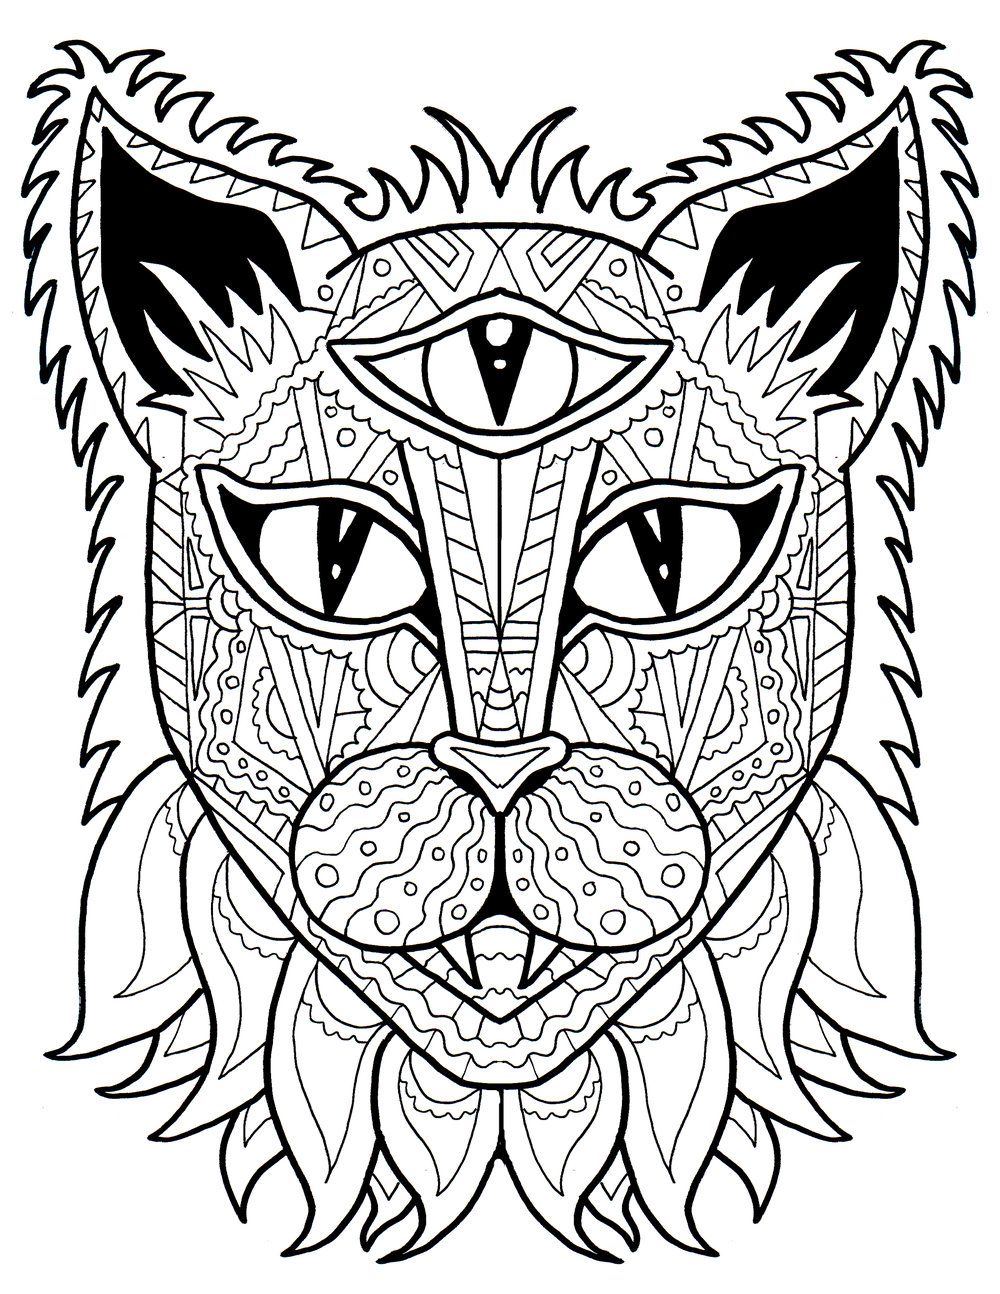 cat-coloring-page3